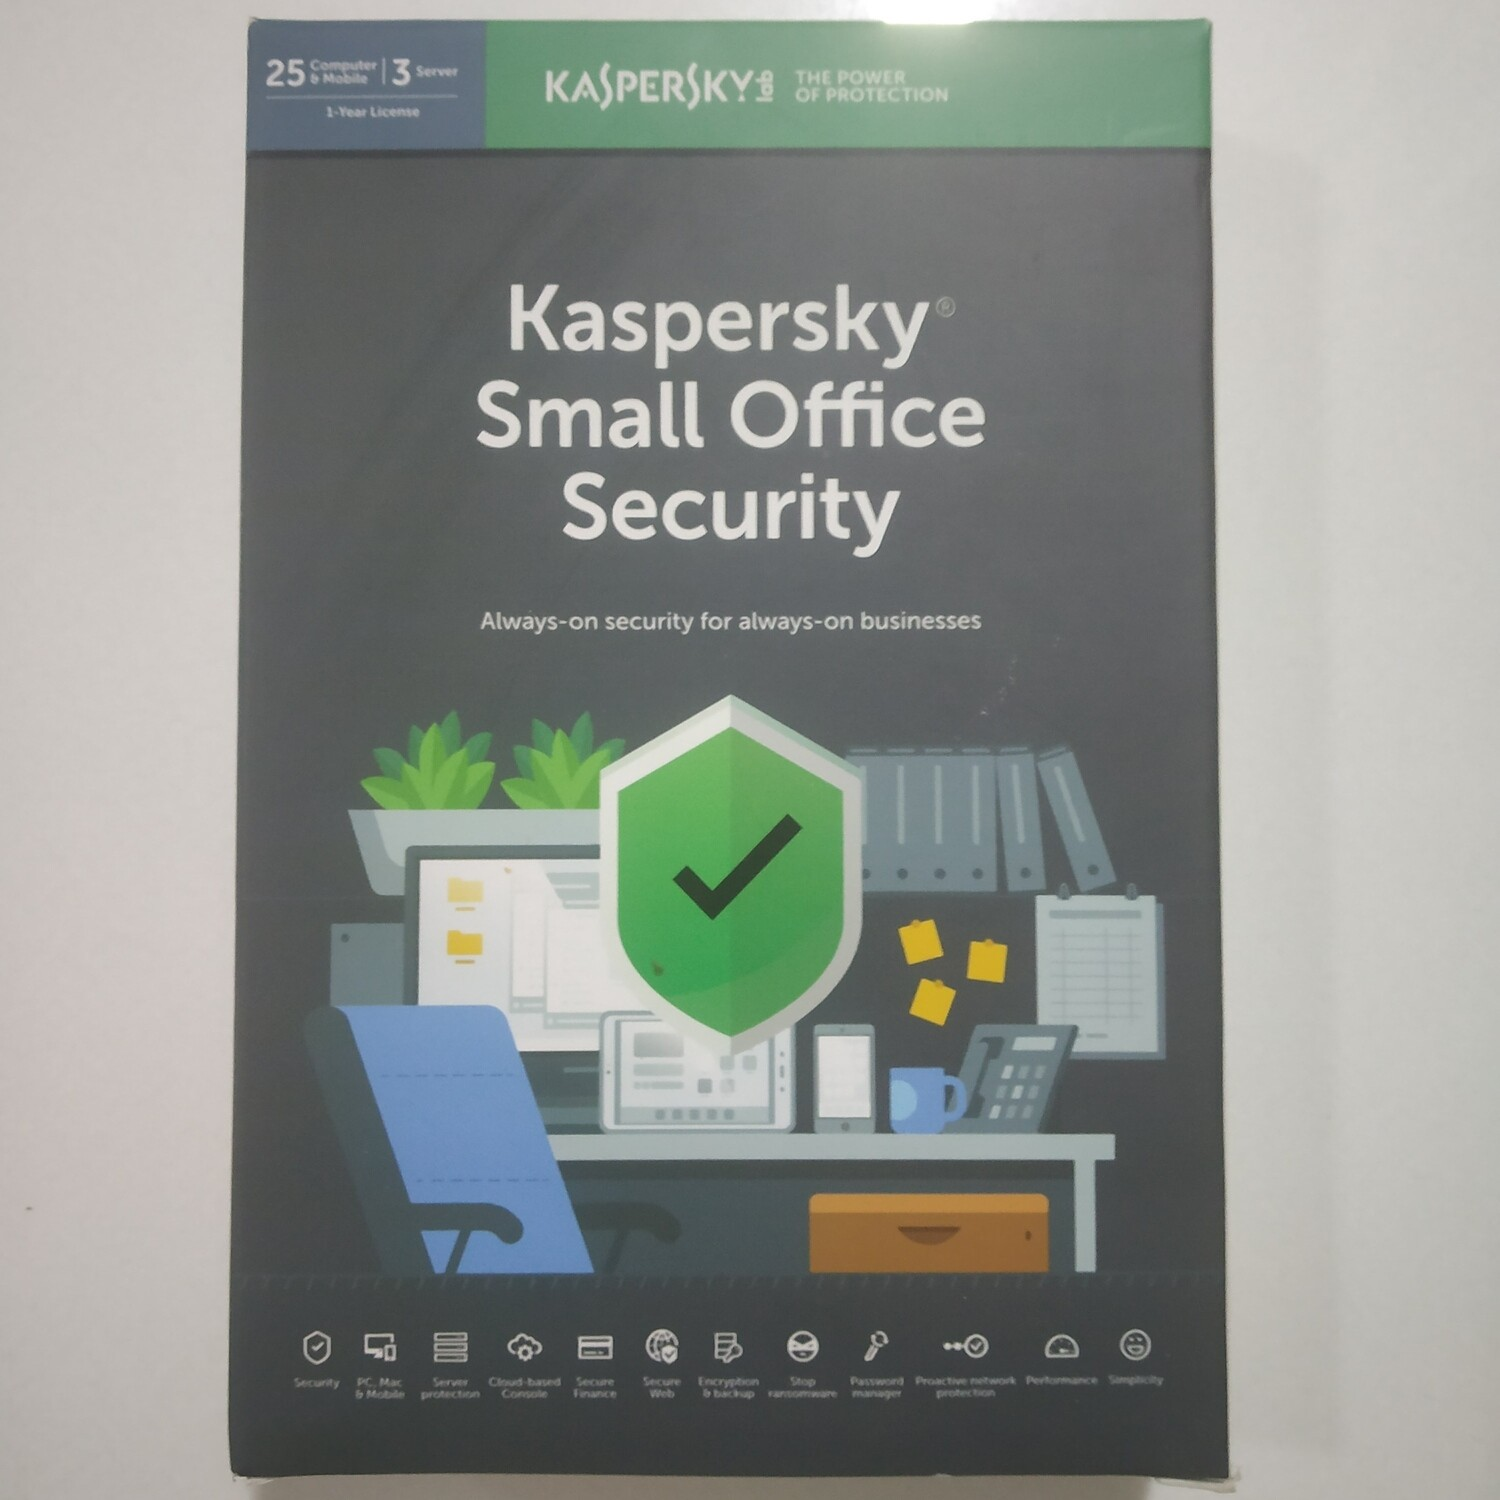 25 PC, 3 Server, 25 Mobile, 1 Year, Kaspersky Small Office Security